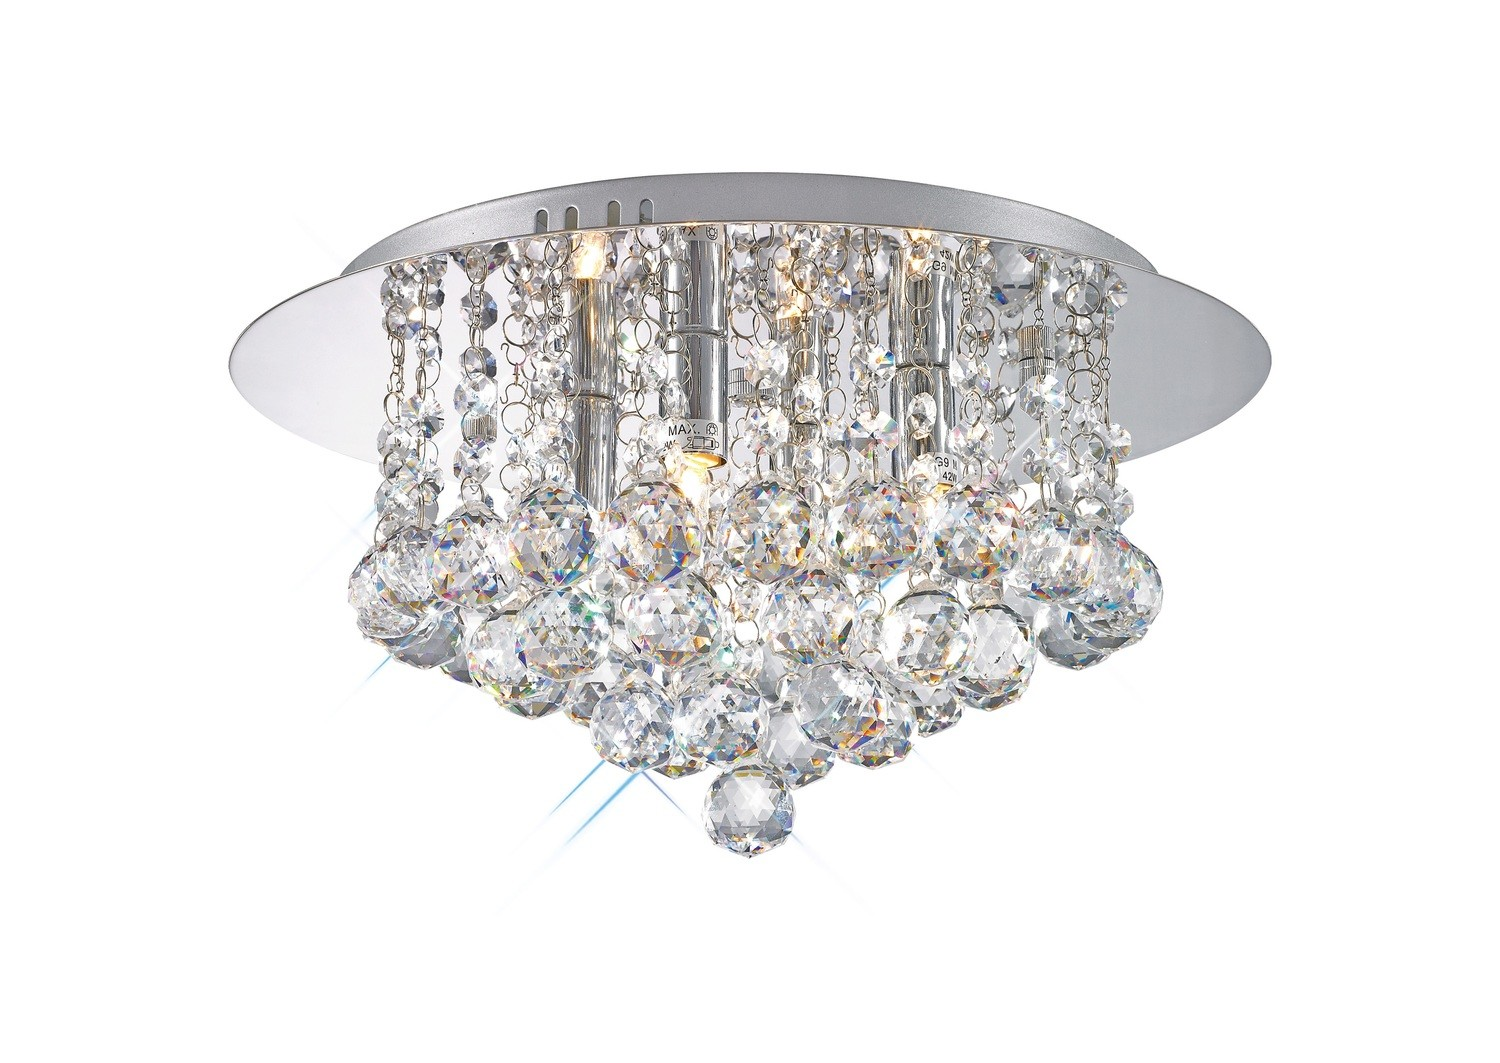 Dahlia Flush Ceiling, 350mm Round, 4 Light G9 Polished Chrome/Crystal